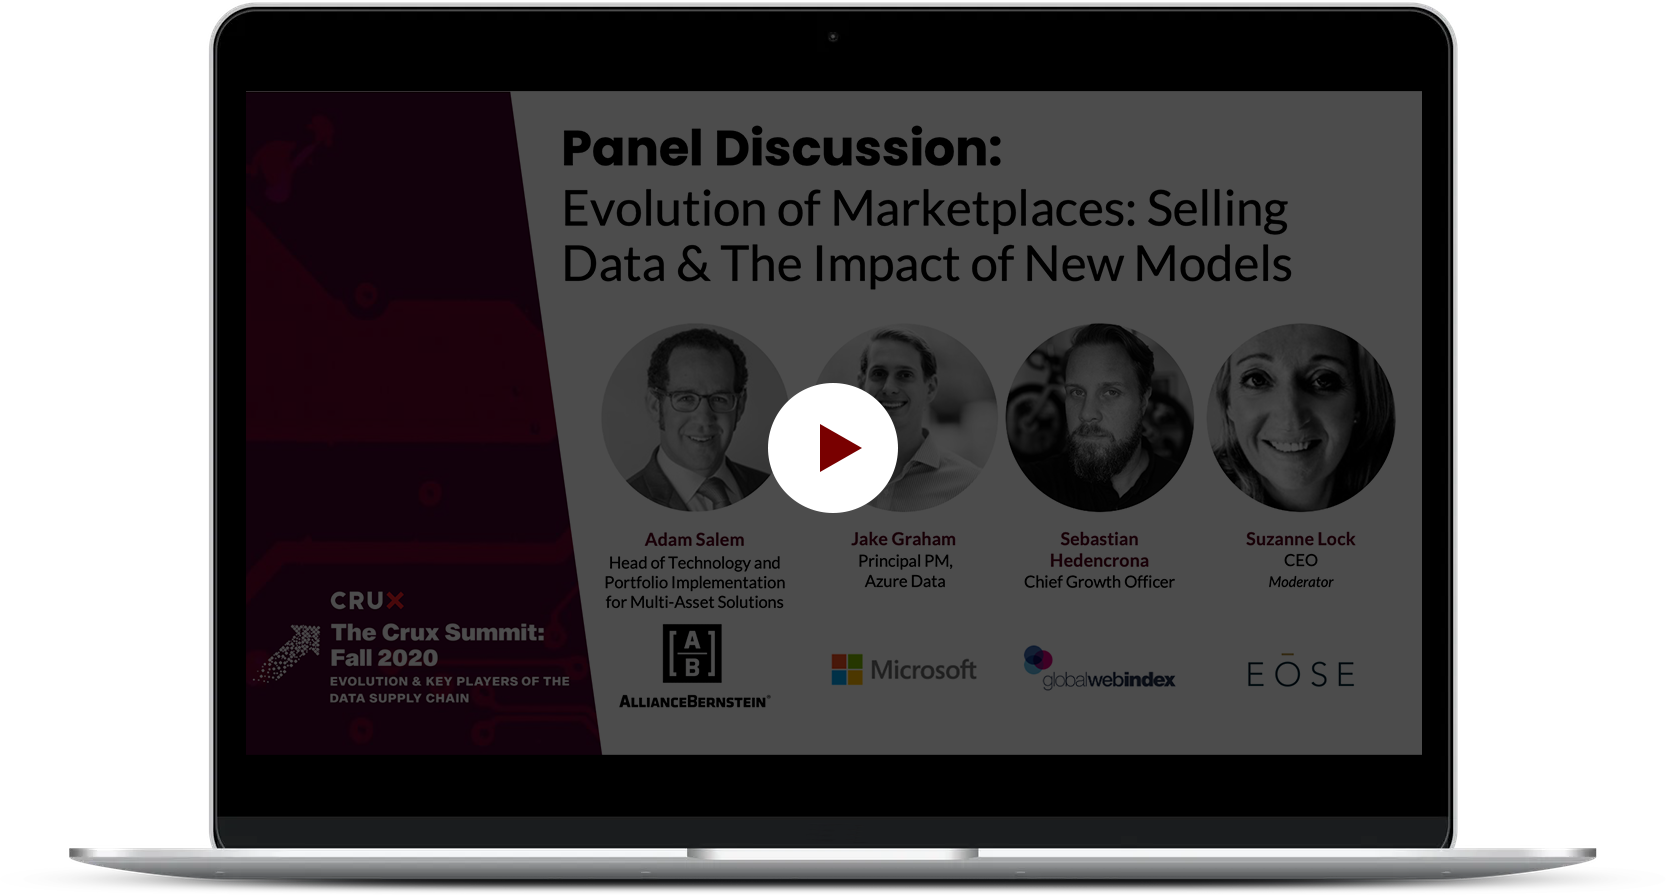 Crux_TCS_PanelDiscussion+EvolutionMarketplace+SellingDataImpactofNewModels_04